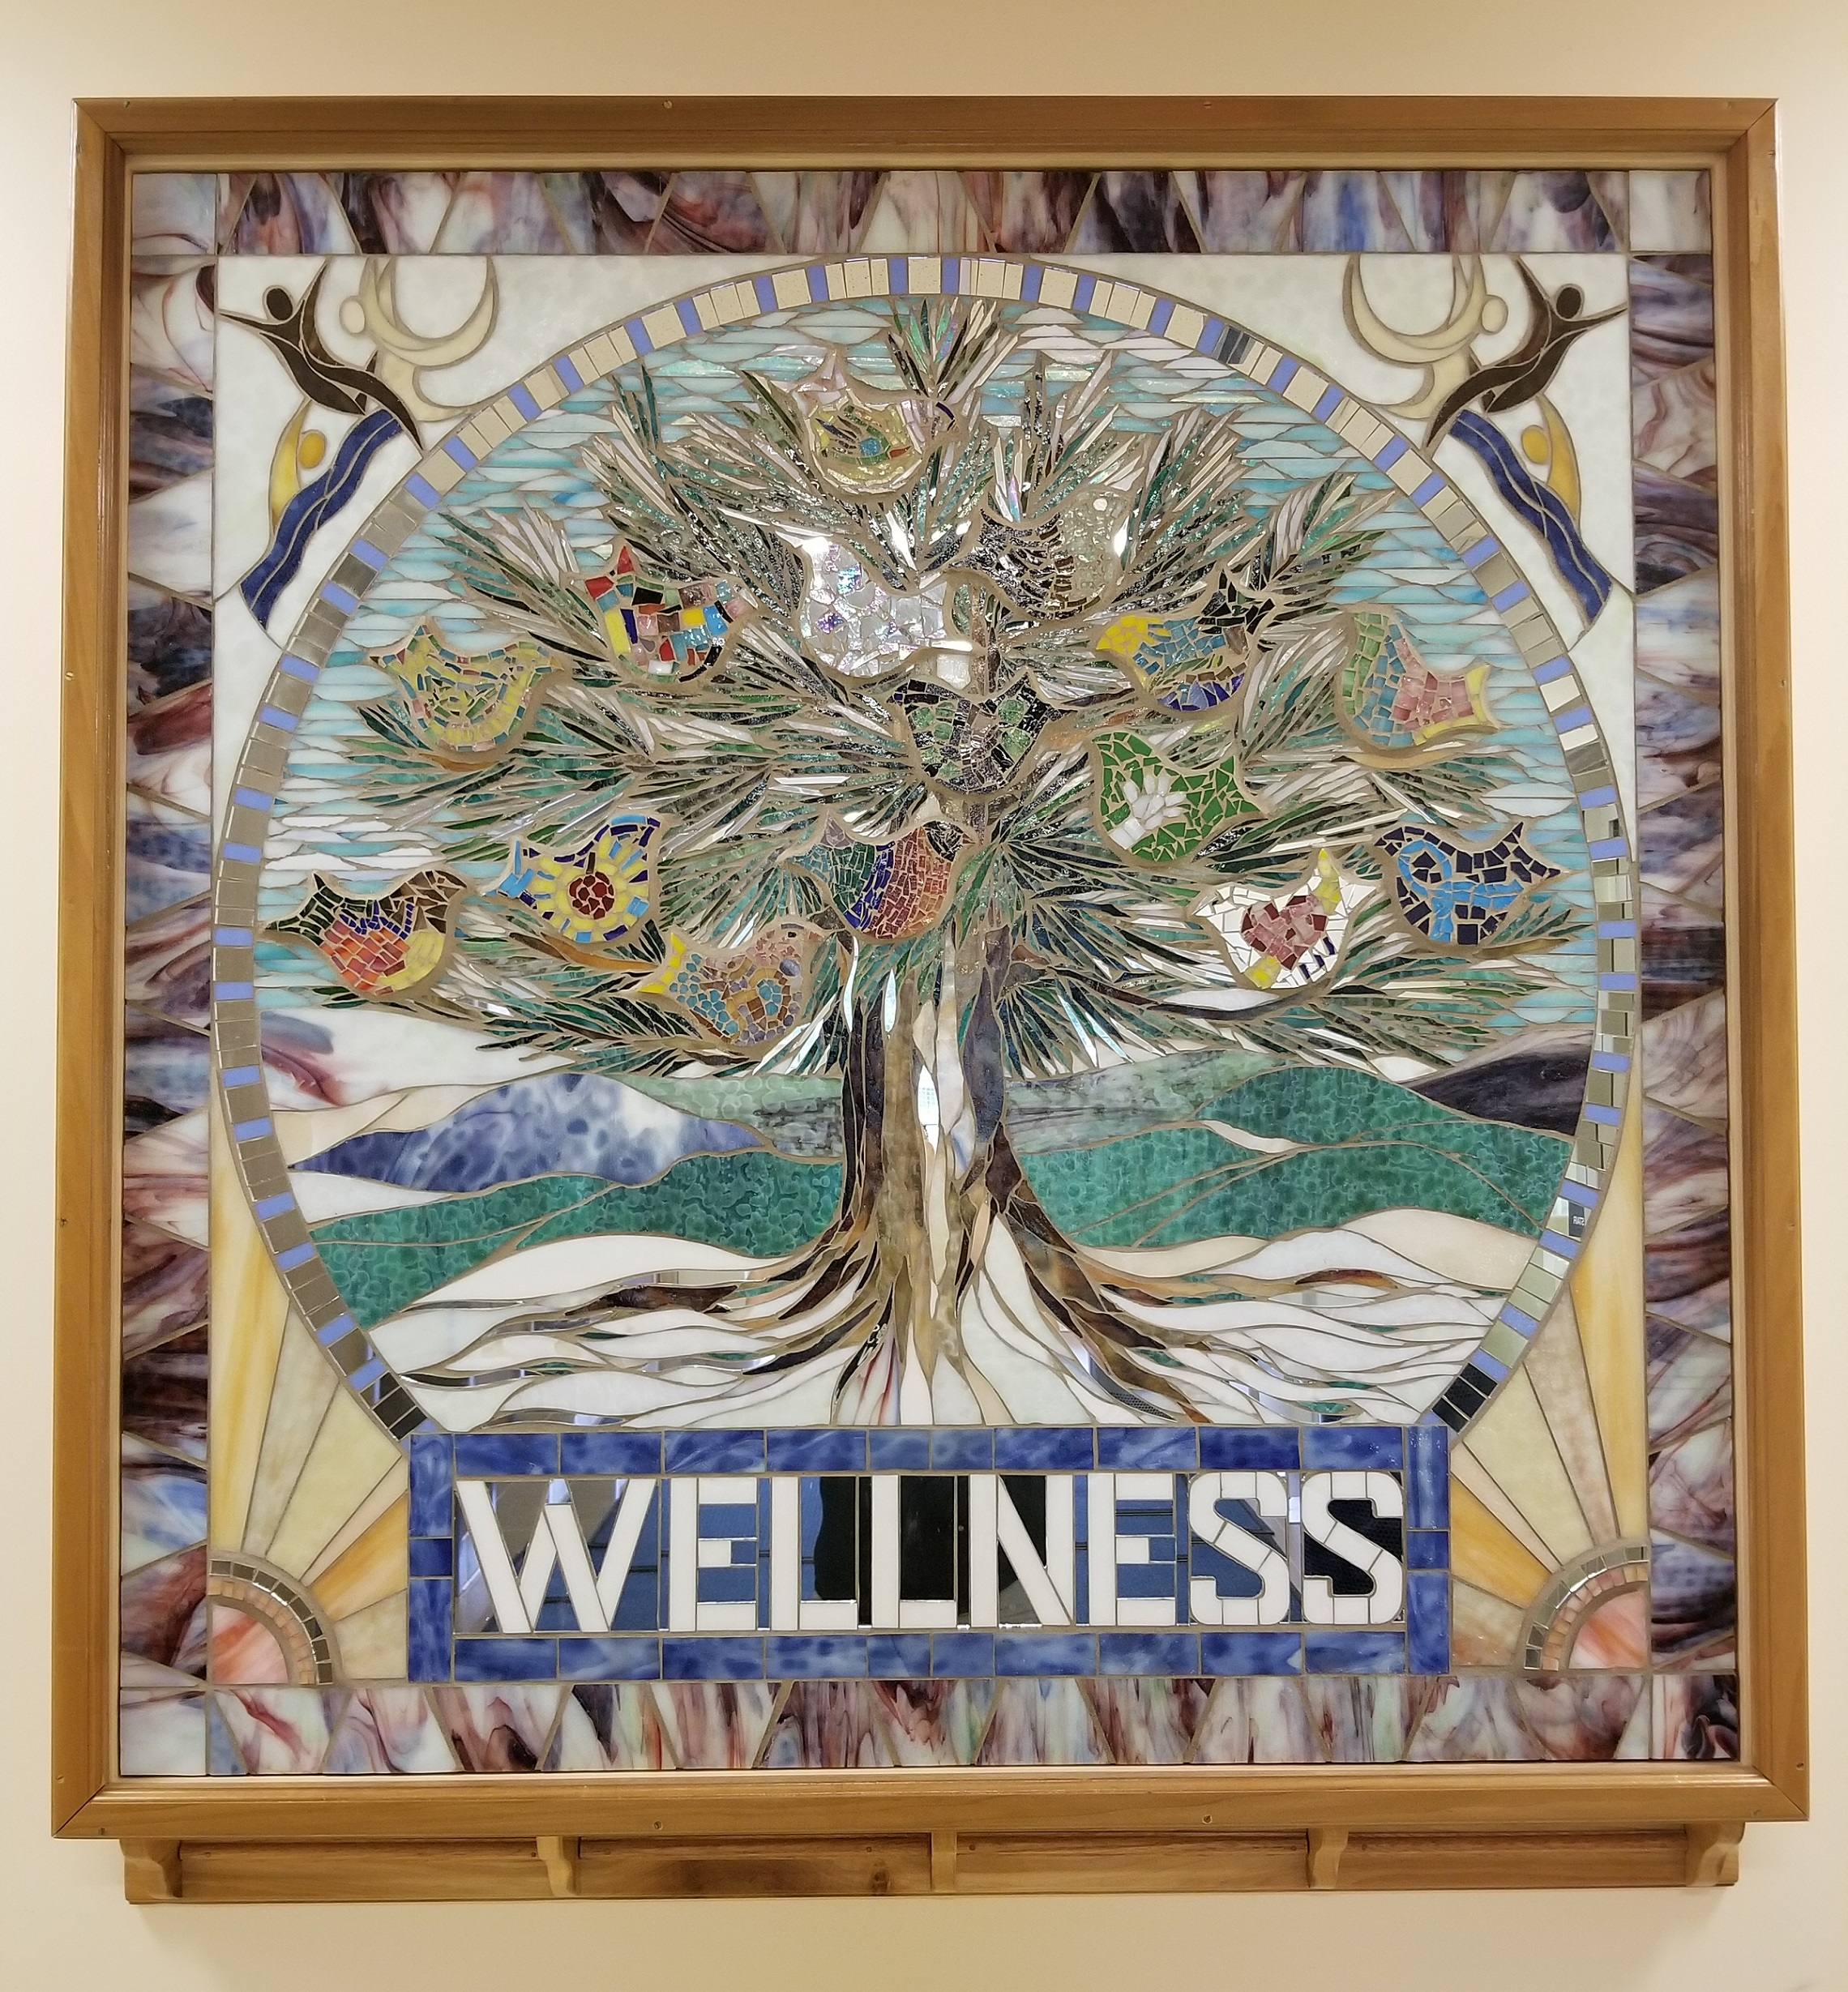 """Wellness"" mosaic, by Deborah Palmer. Ground floor, located next to elevators."